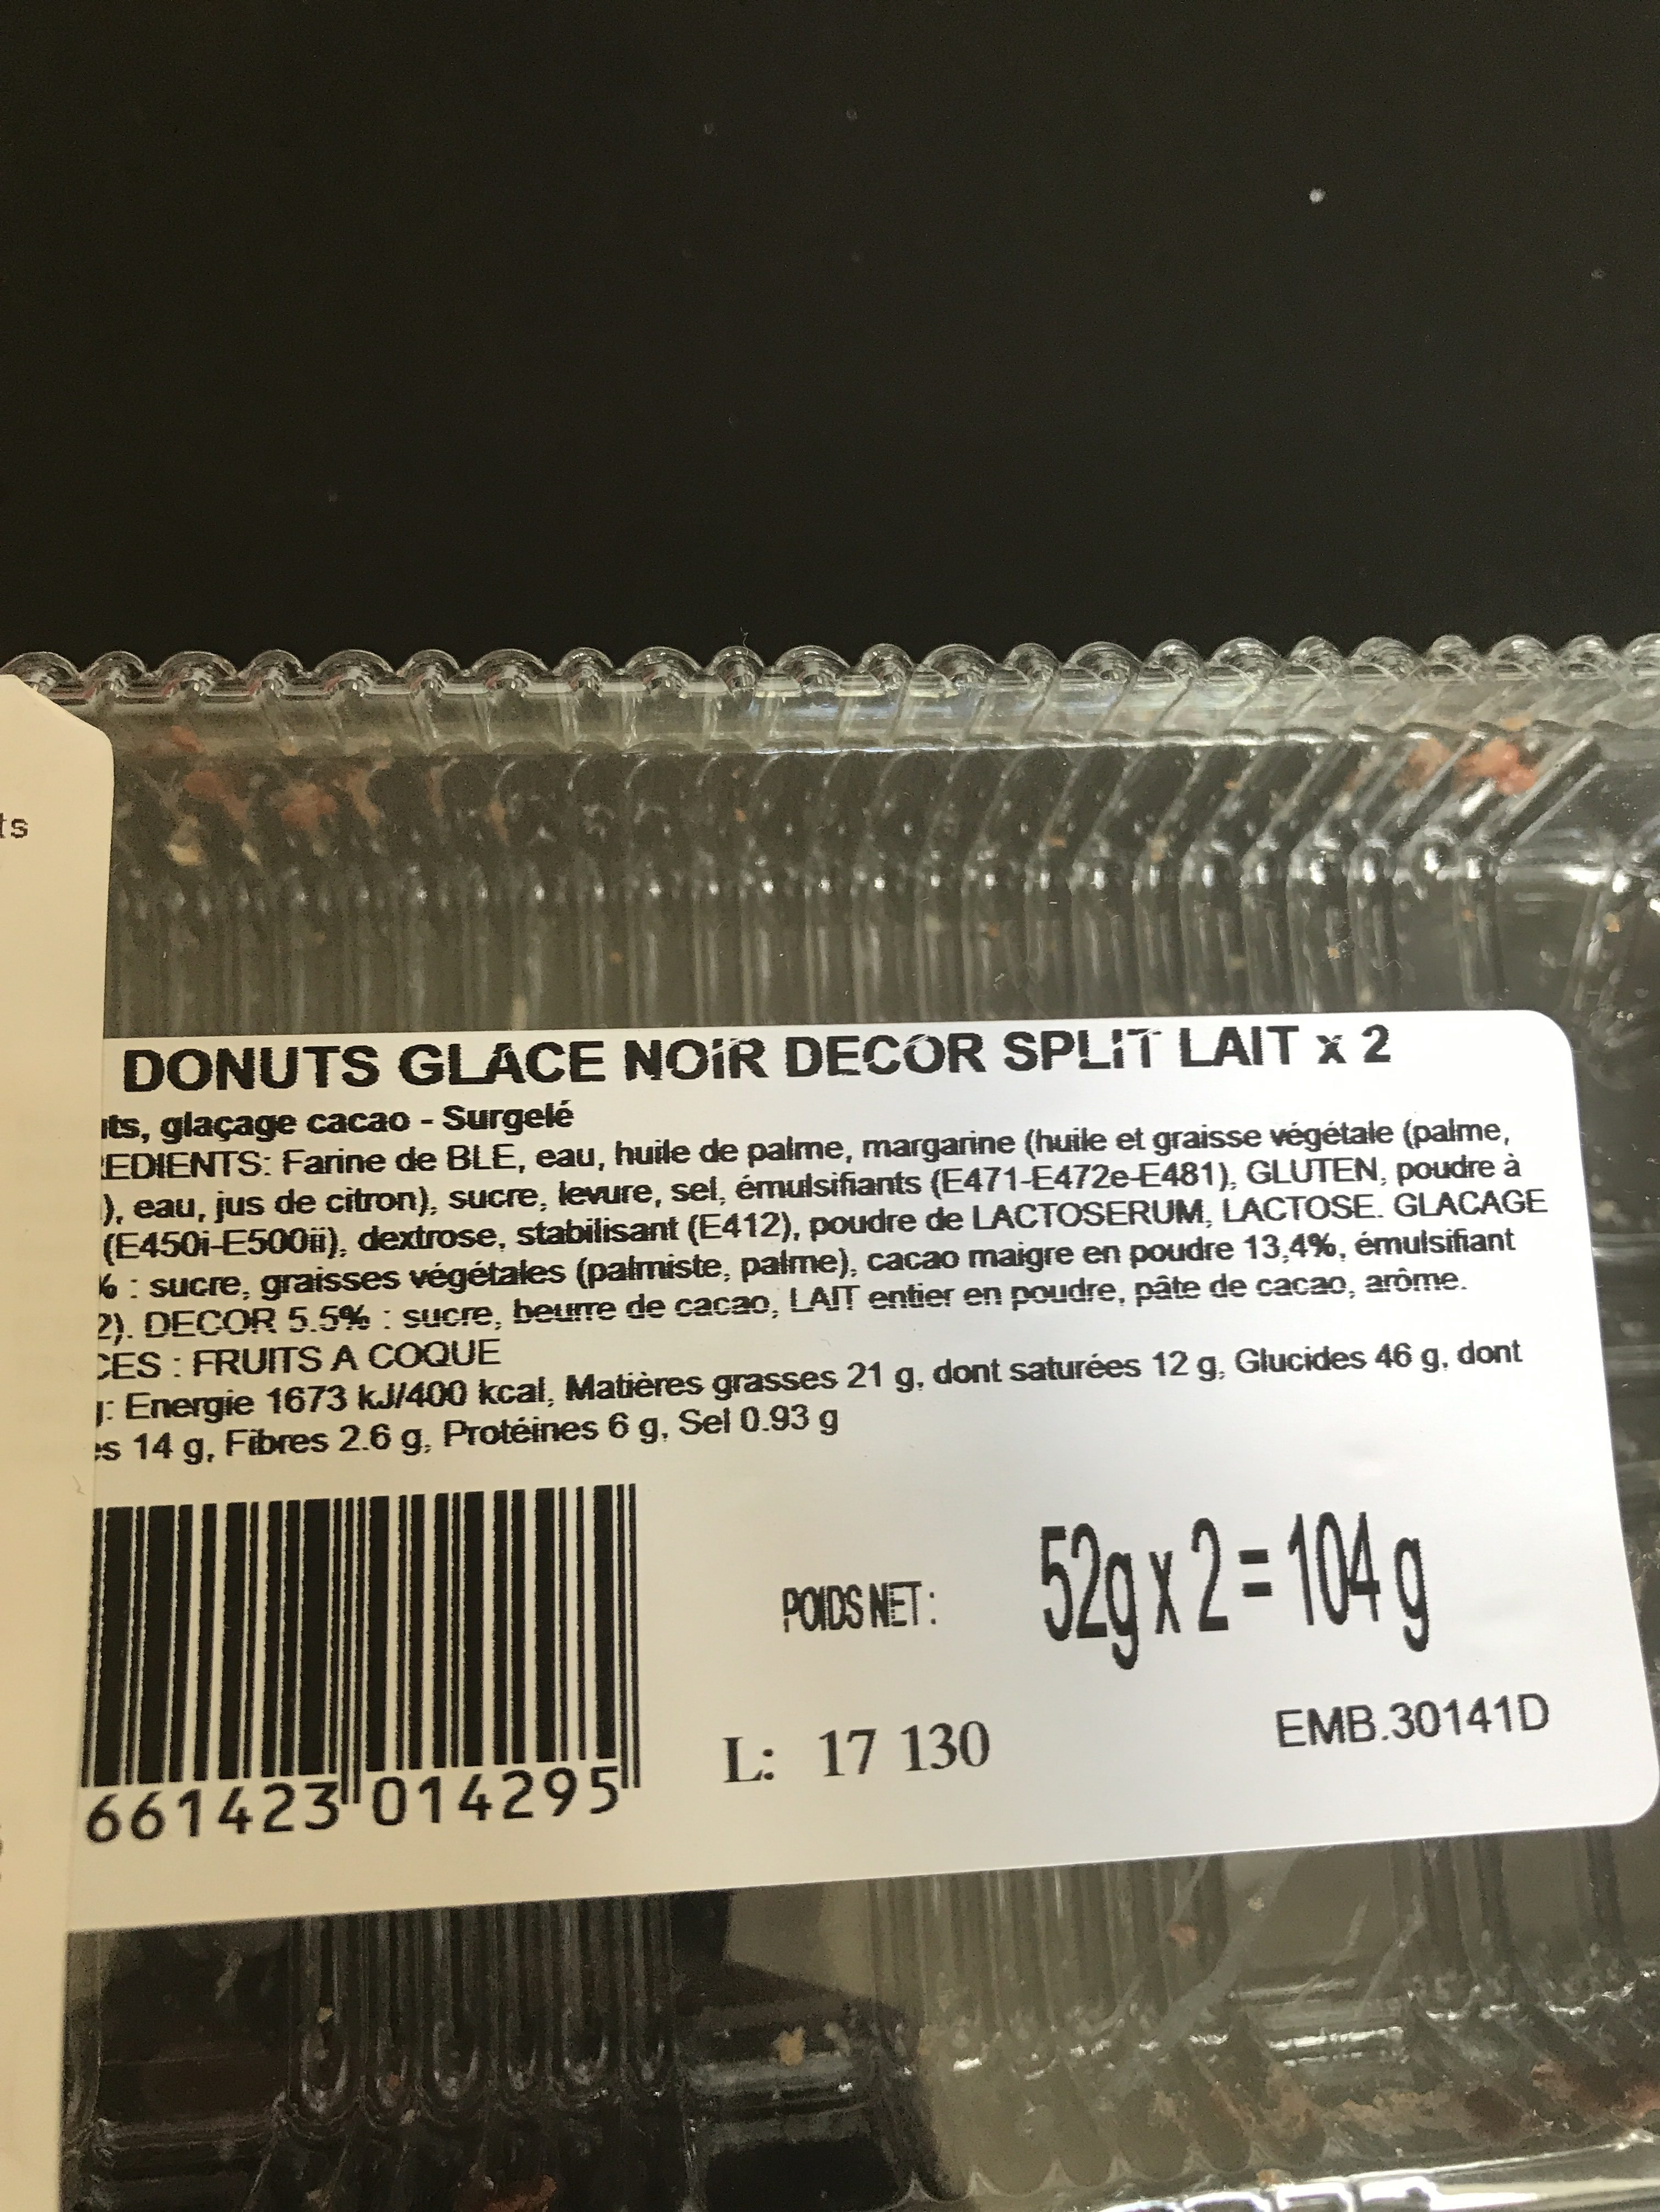 Donuts glace noir - Ingredients